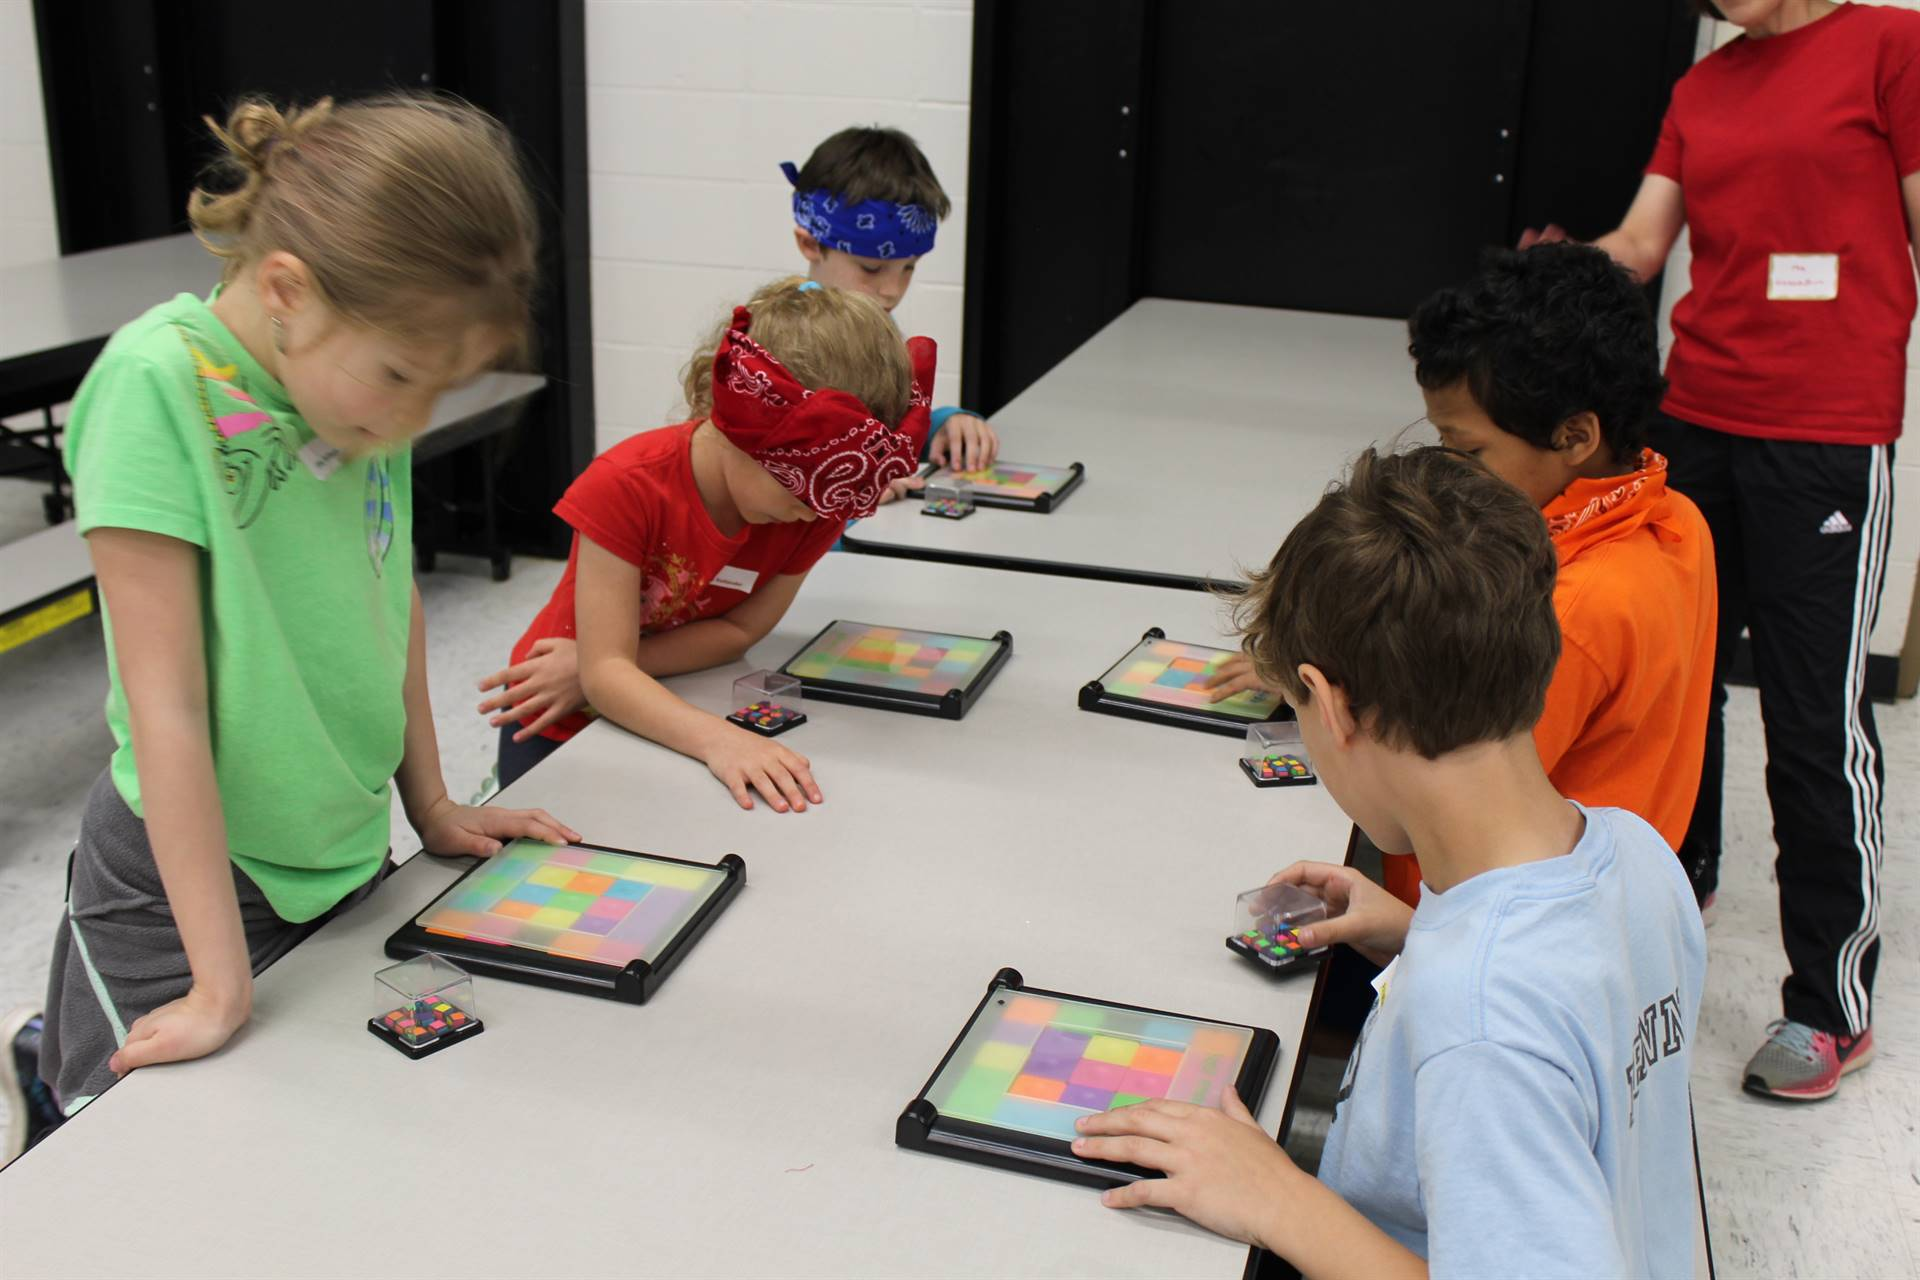 Students playing Q-Bitz